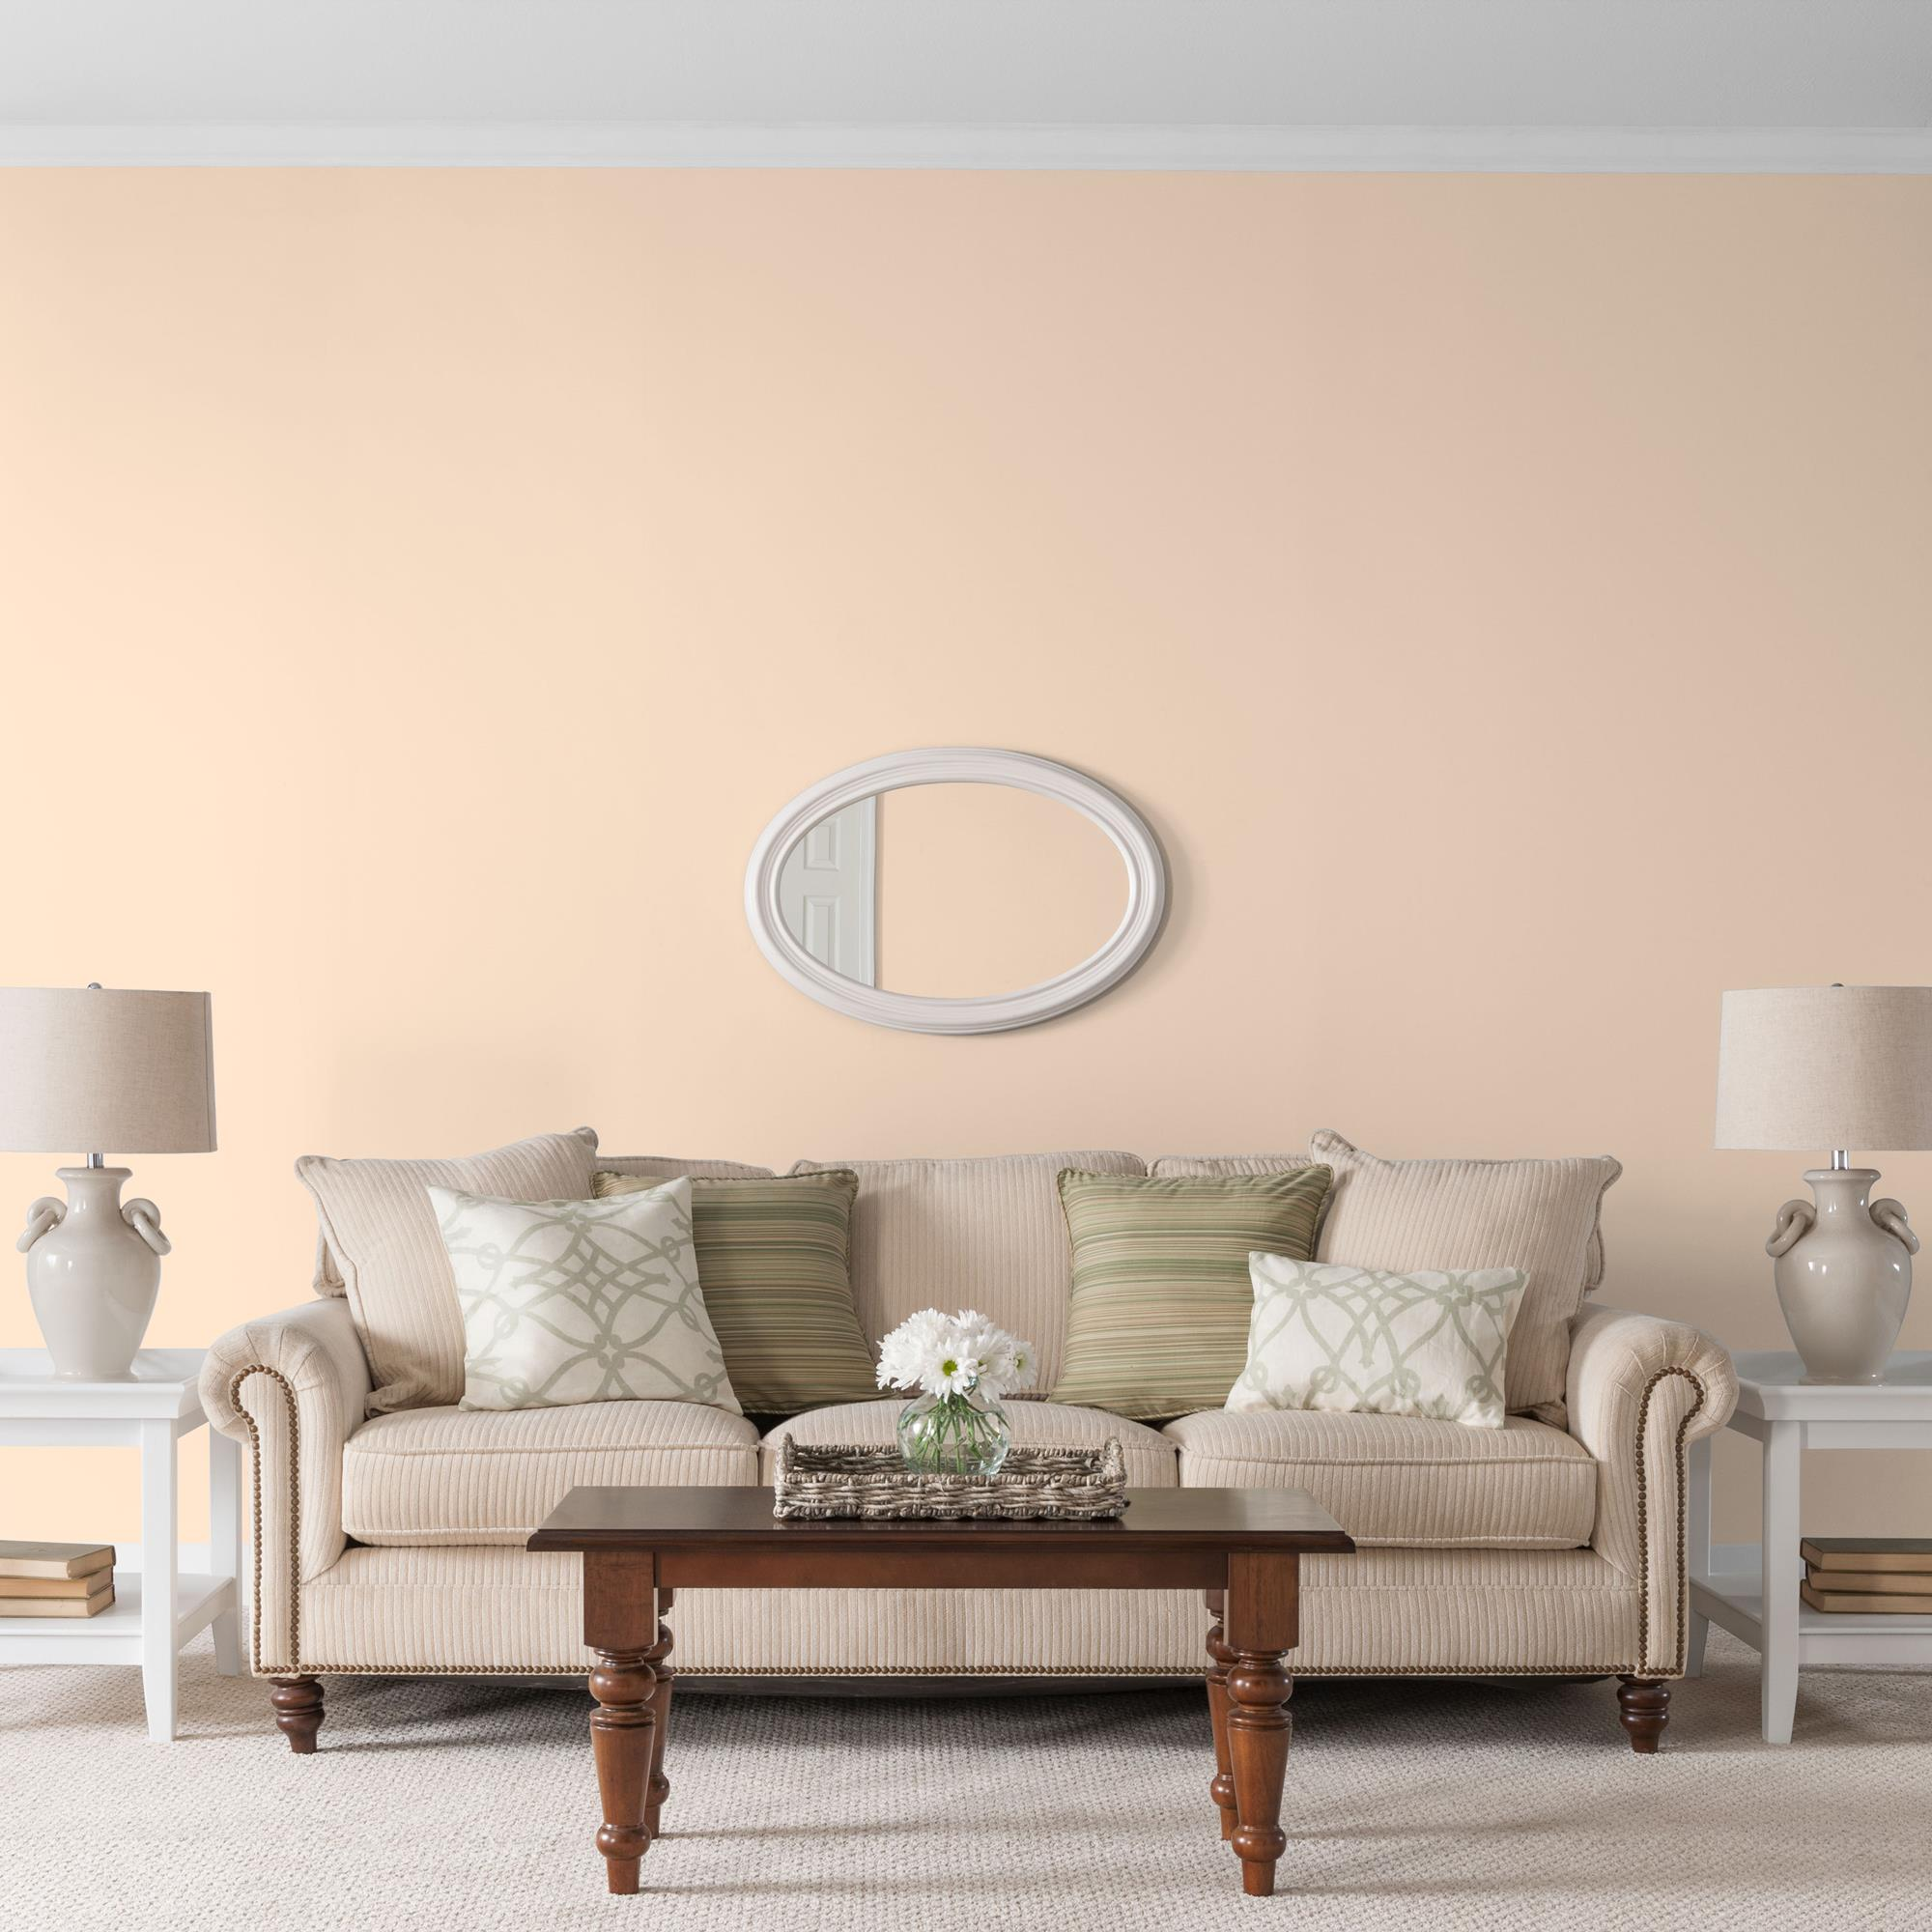 Glidden High Endurance, Interior Paint And Primer, Pavilion Peach, #00YY 71/